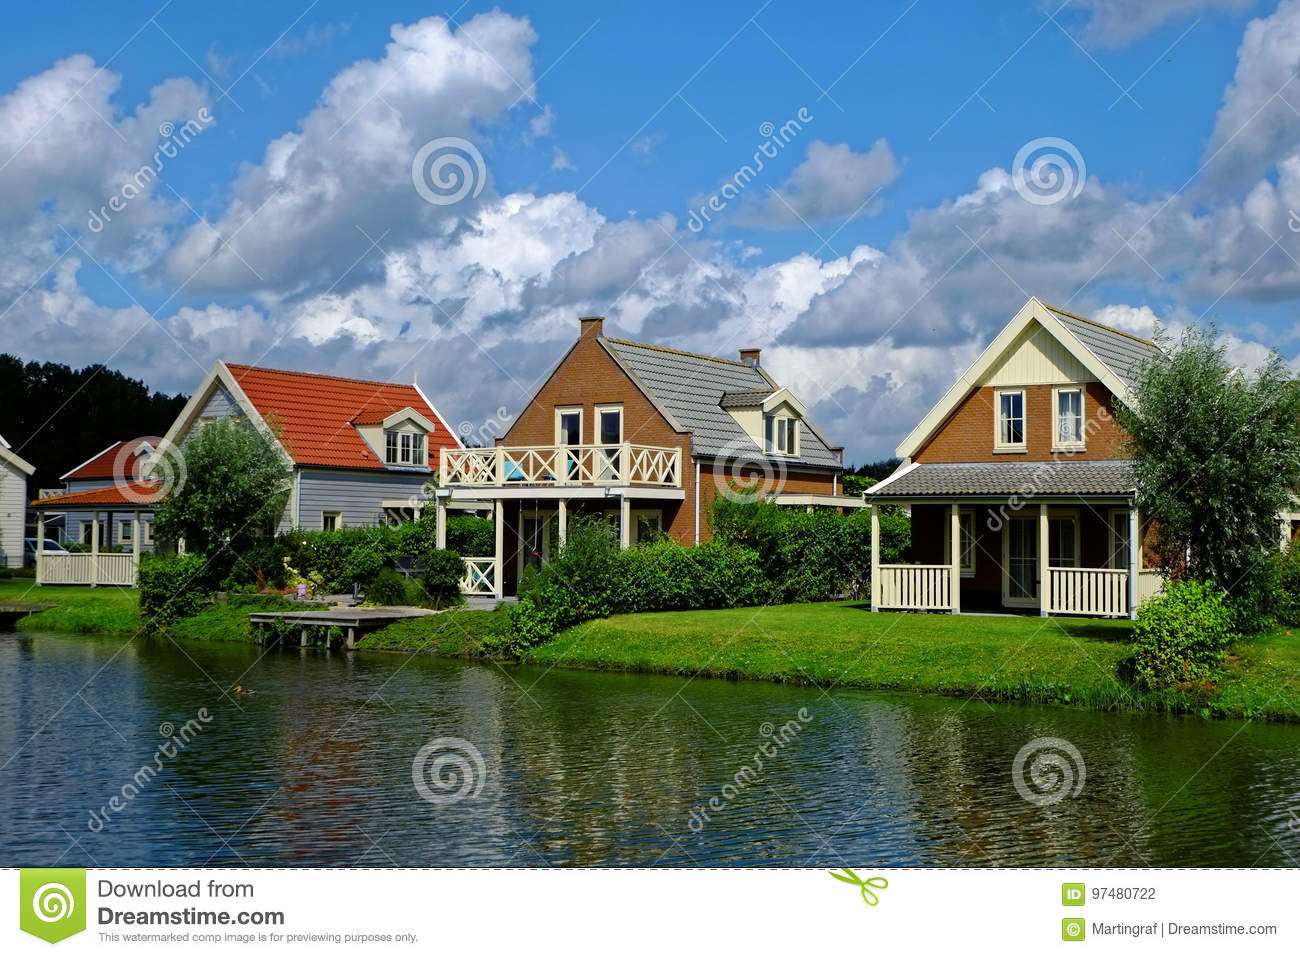 Lakeside holiday homes idyll by noon